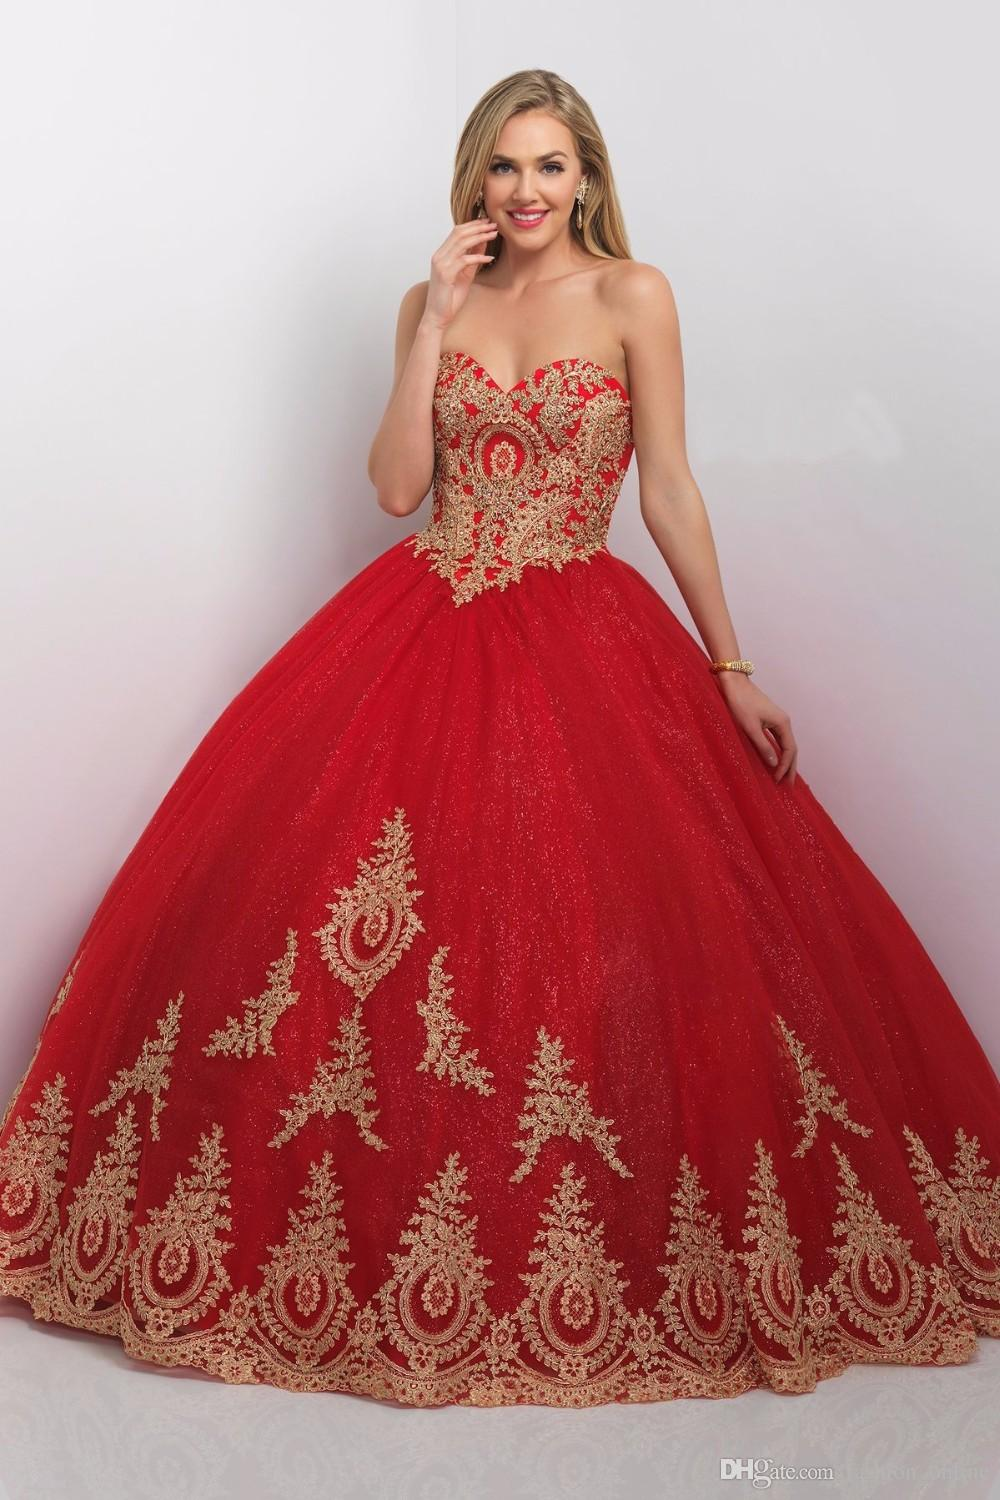 Princess Ball Gown Red Gold Quinceanera Dresses With Jacket New ...